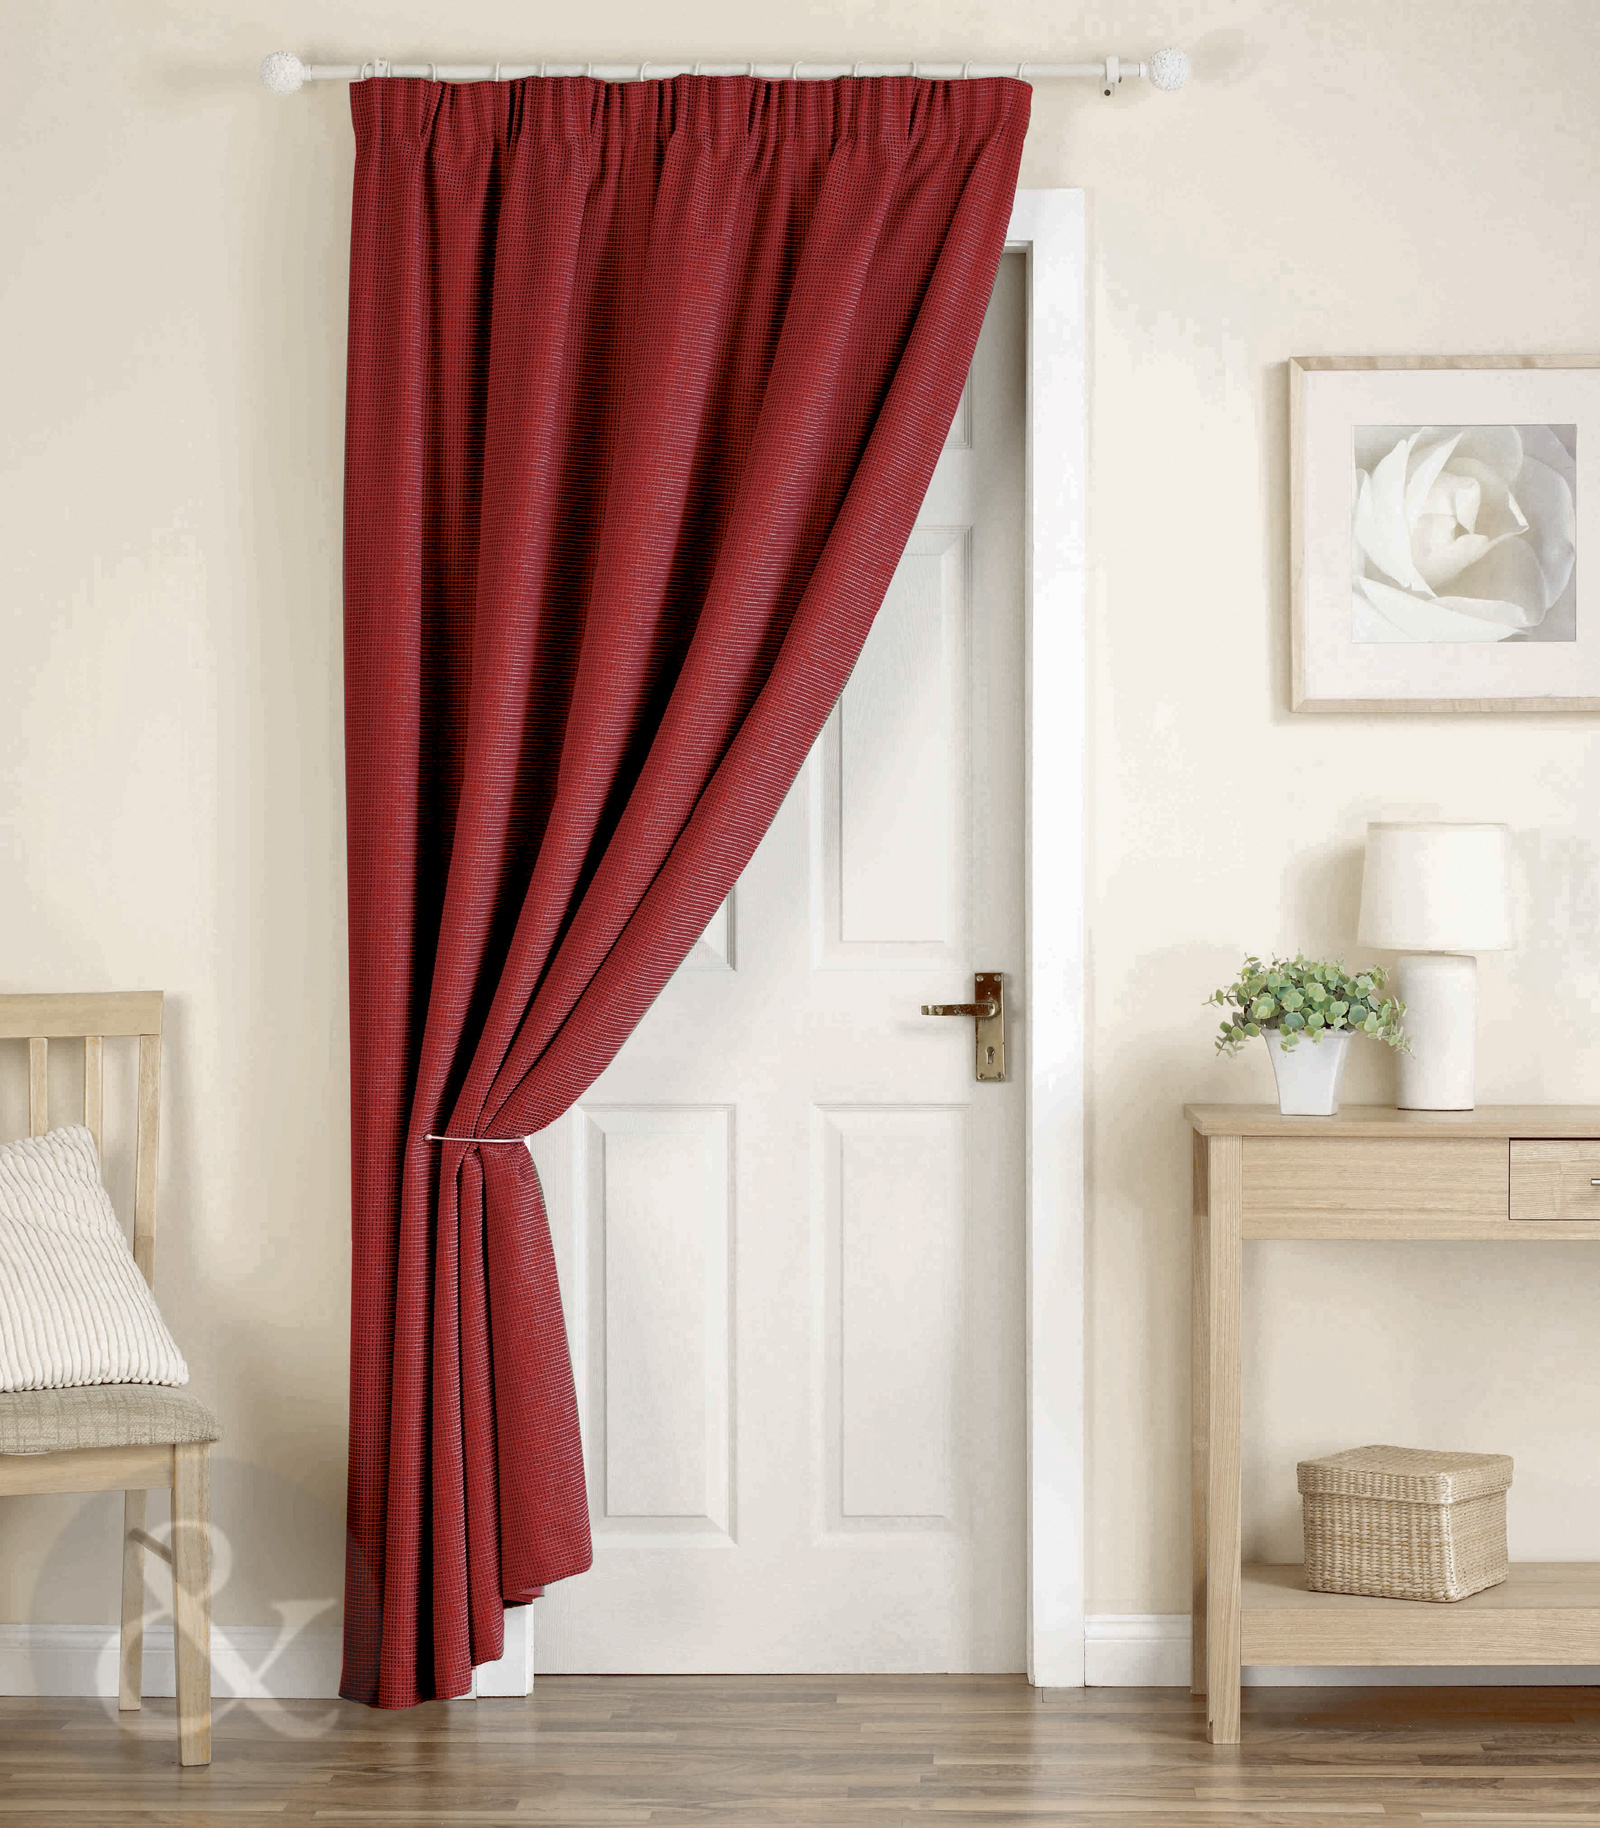 Thick Heavy Door Curtains Ready Made Thermal Lined 66 X 84 Door Curtain Panel Ebay